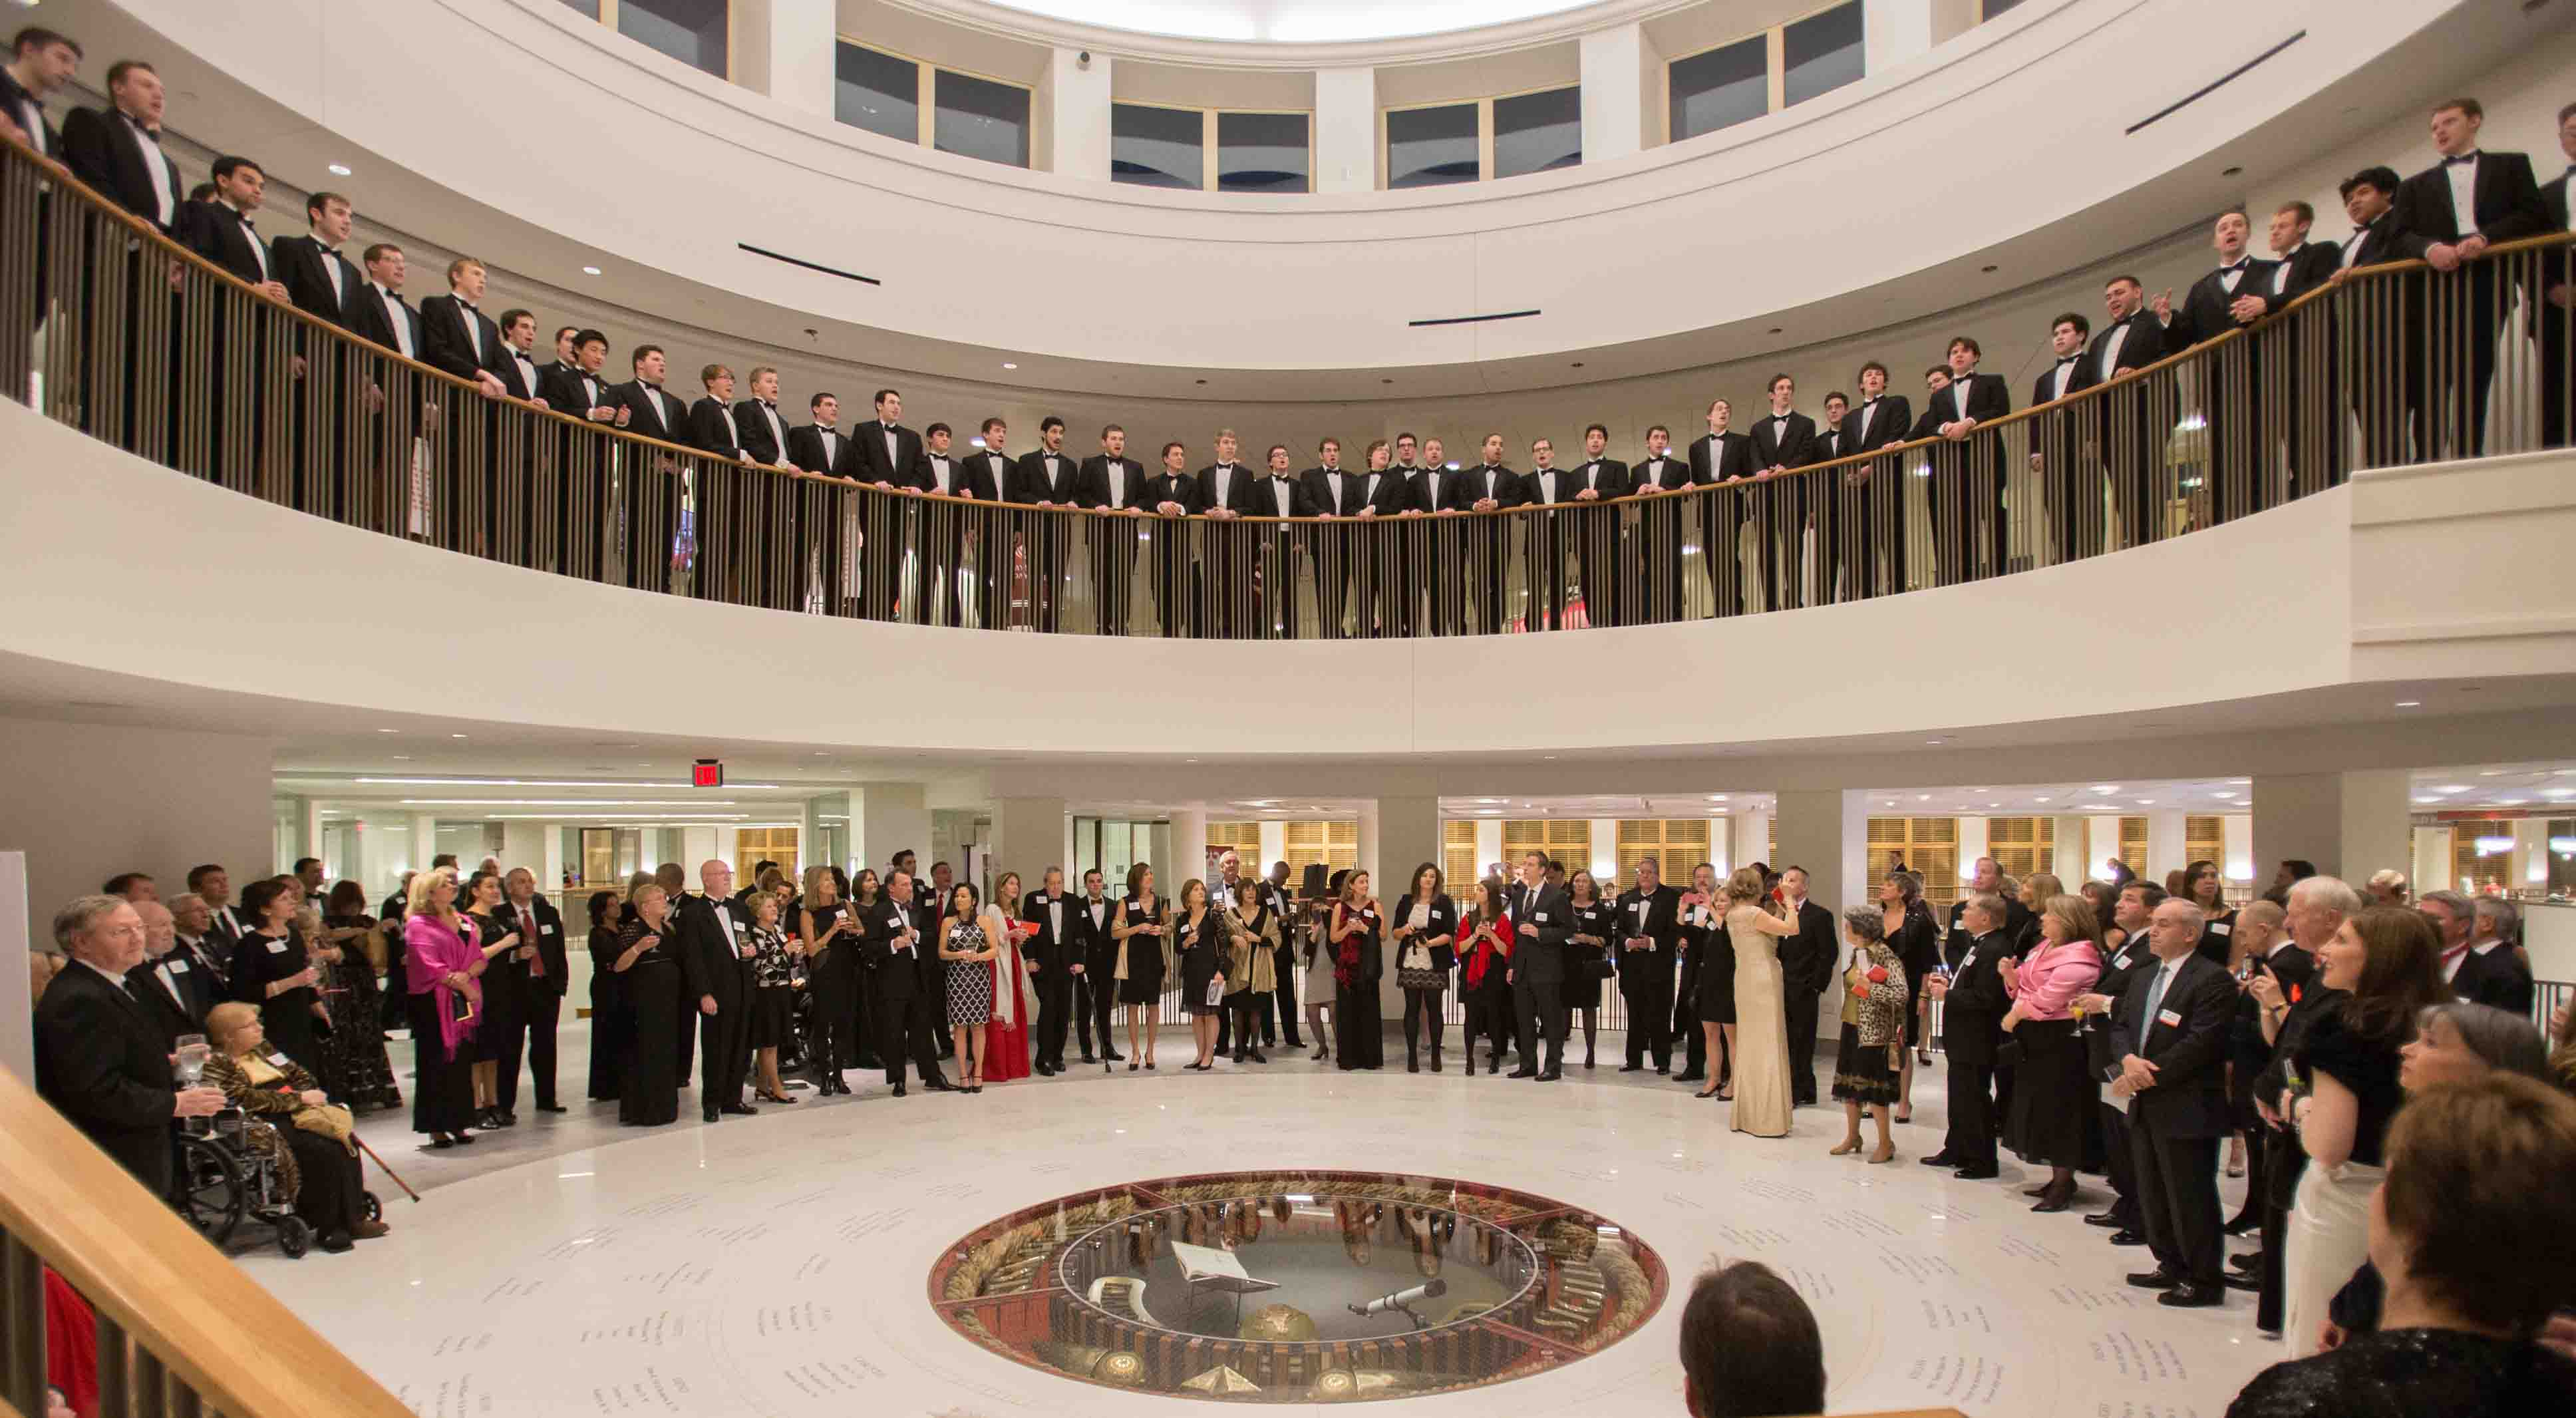 A glee club sings from the second floor of the Armstrong Student Center rotunda to a crowd below